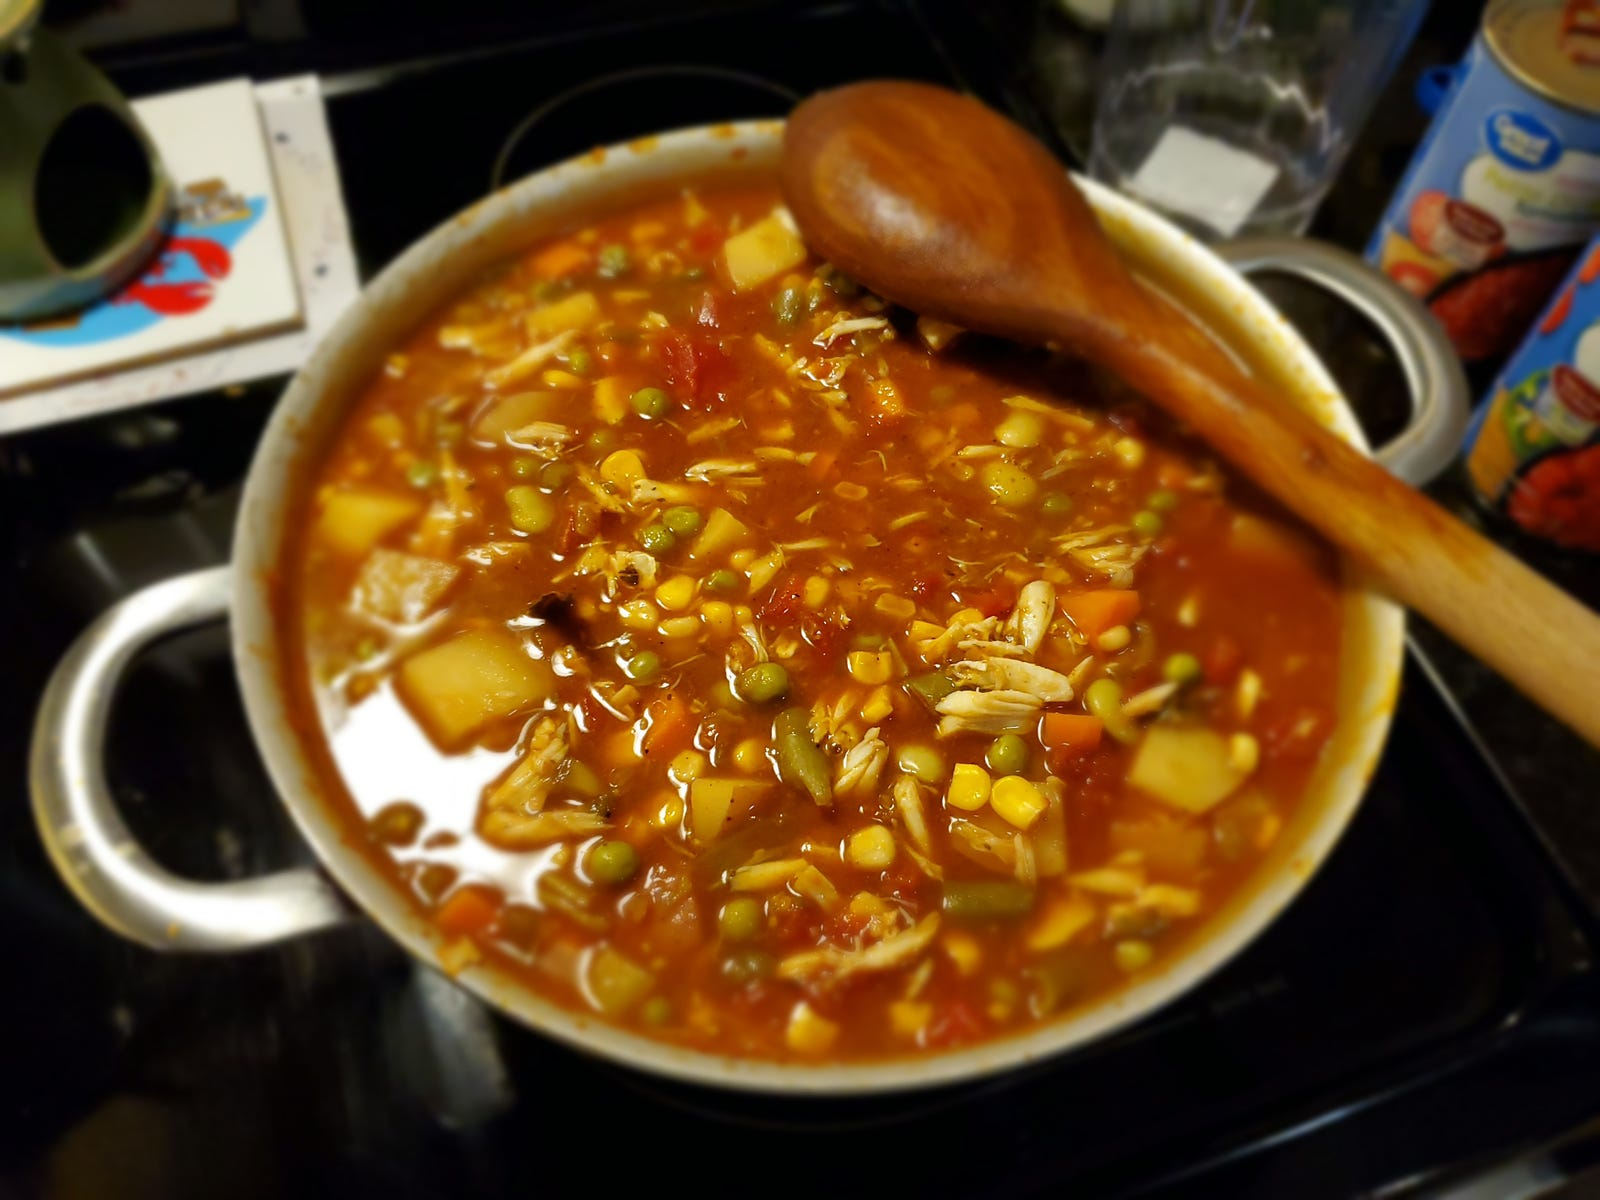 Soup! These pictures are in the wrong order, but whatever.